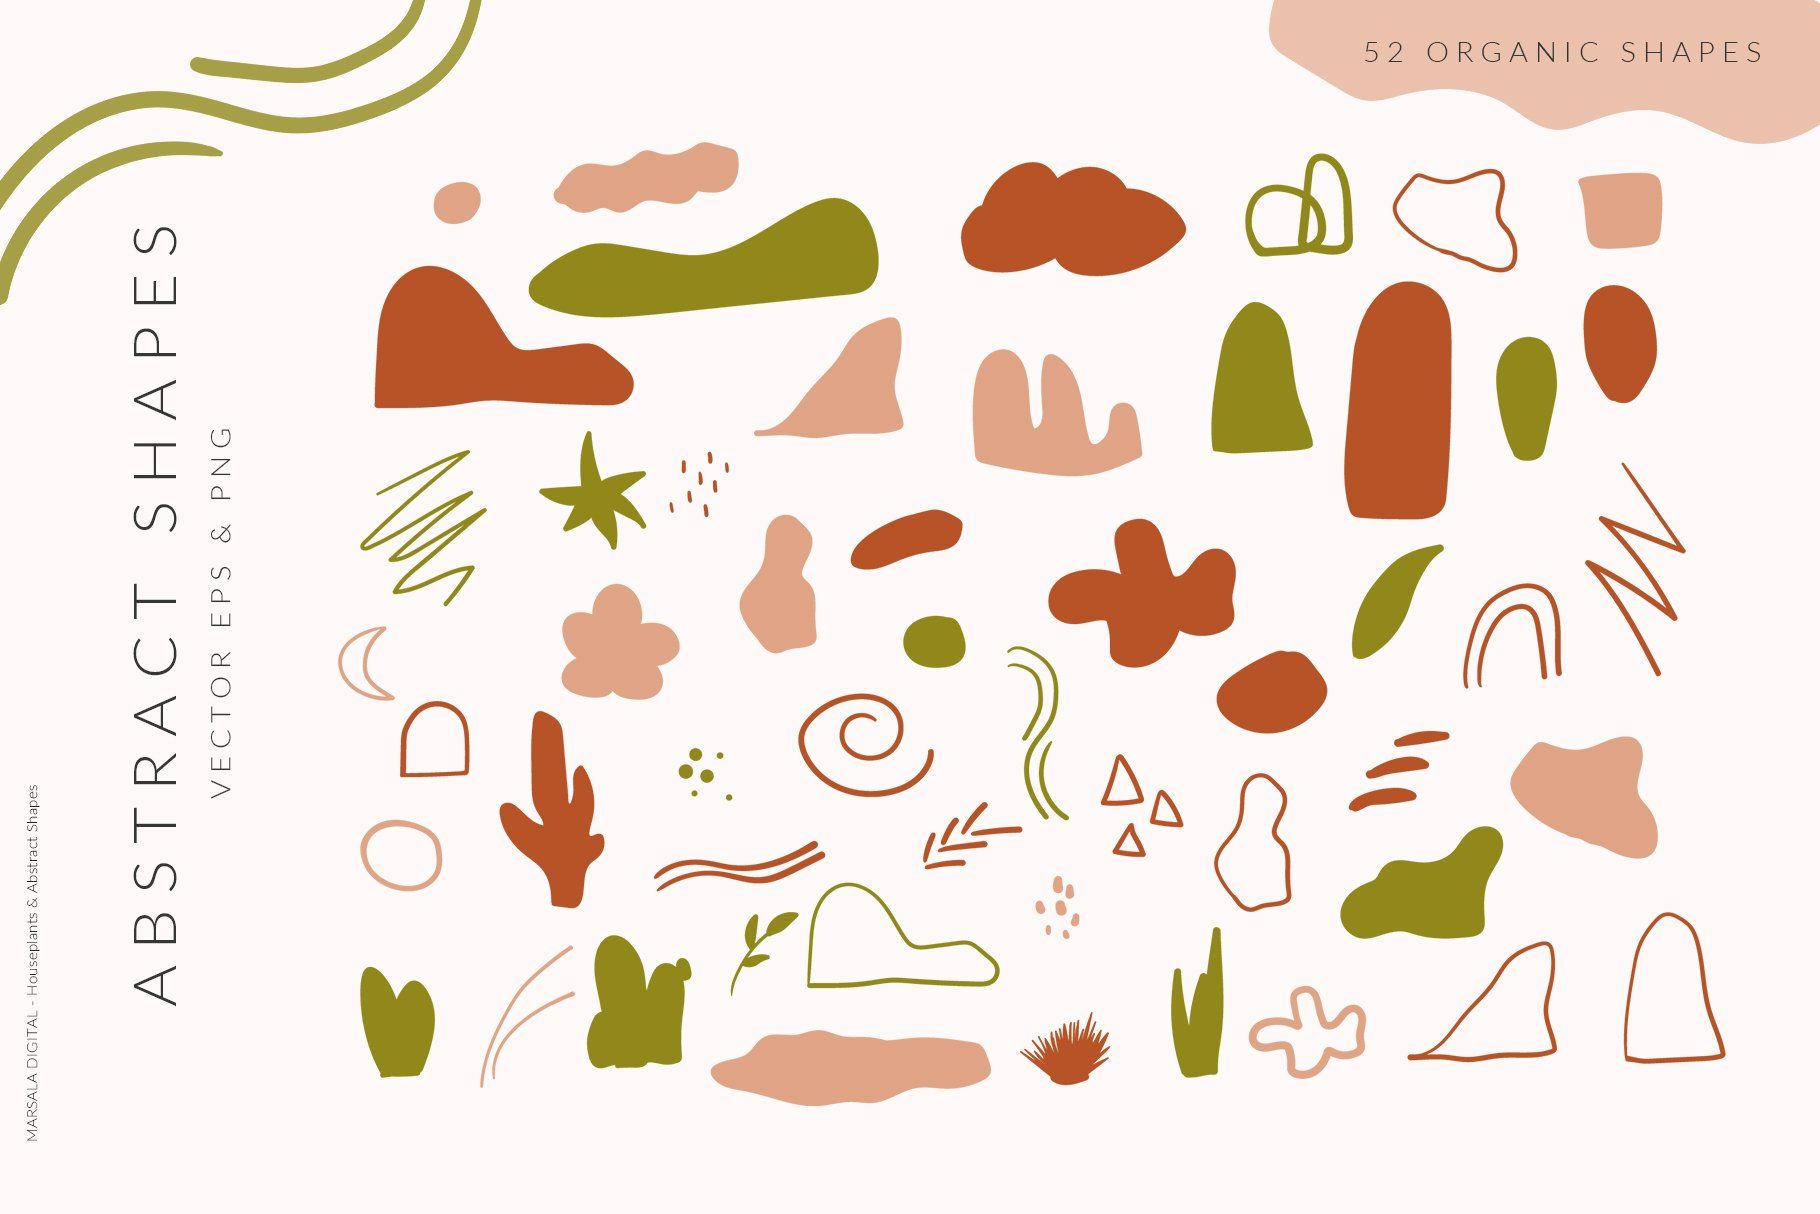 Abstract Shapes Houseplants Line Art Abstract Shapes Abstract Line Art Line Art Vector